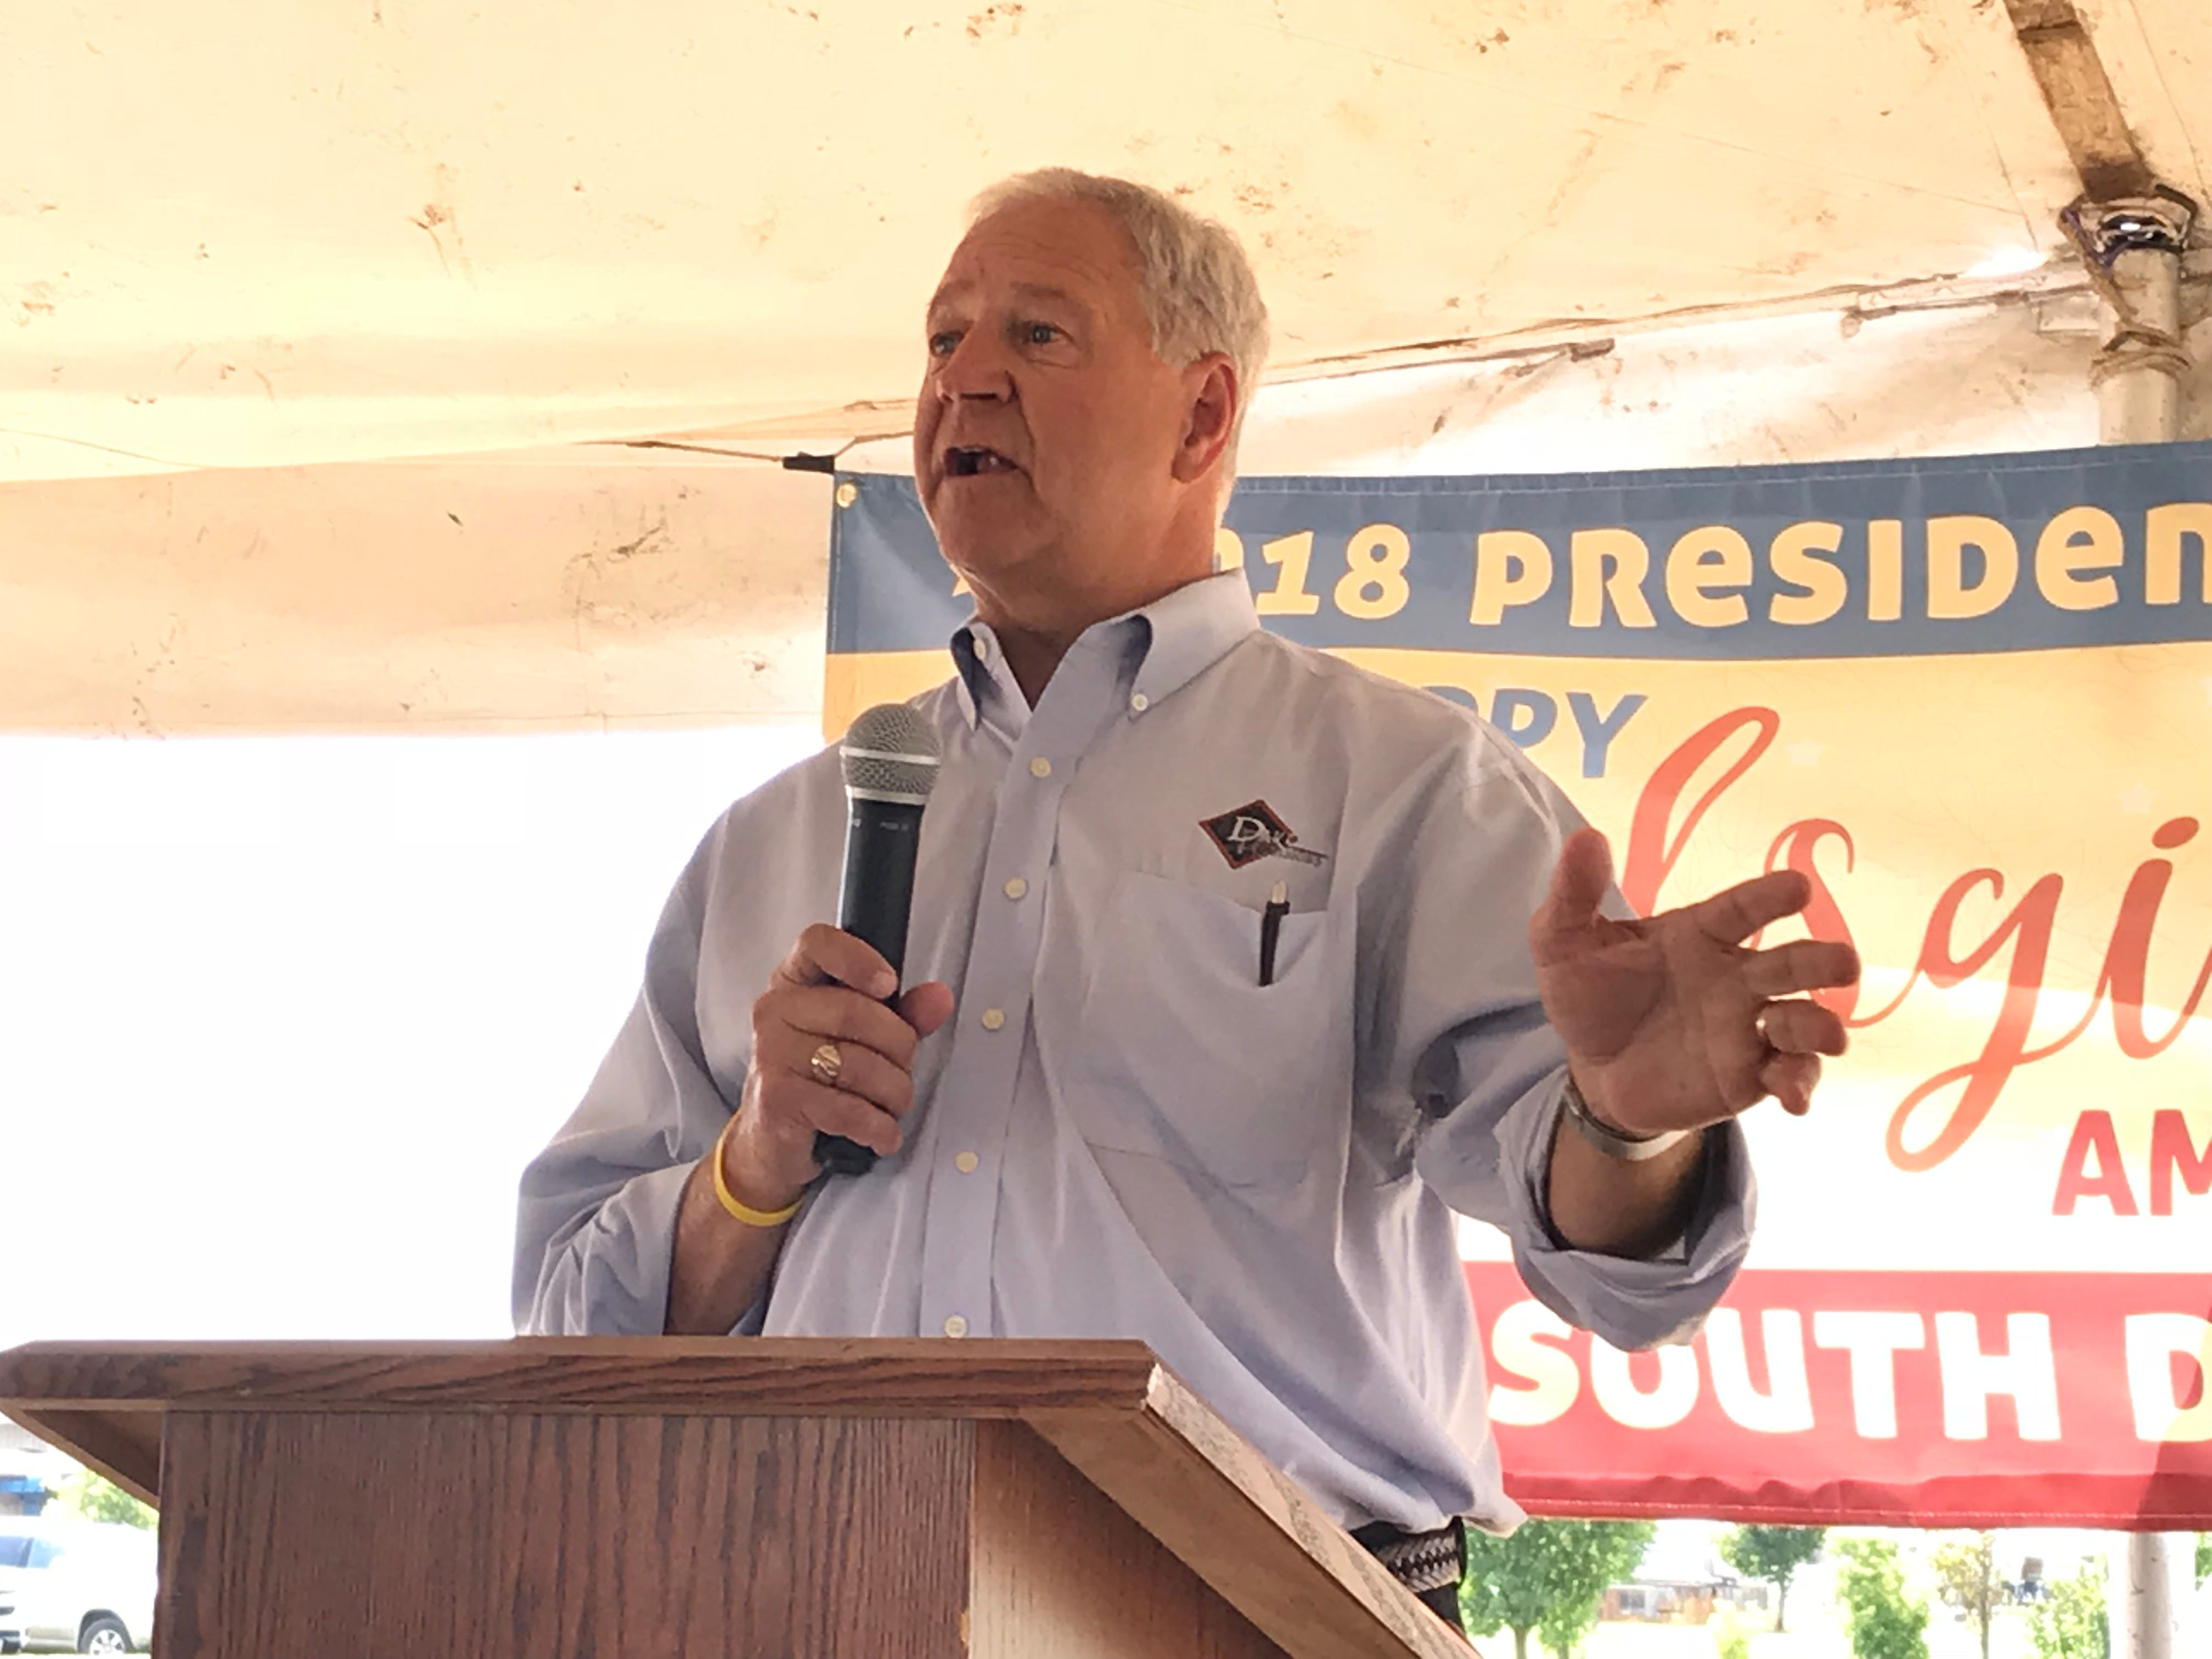 Jeff Sveen, board chair of Dakota Provisions and current chair of the National Turkey Federation, speaks at the presentation of South Dakota candidate birds for the National Thanksgiving Turkey, a tradition that dates back to the Truman administration.